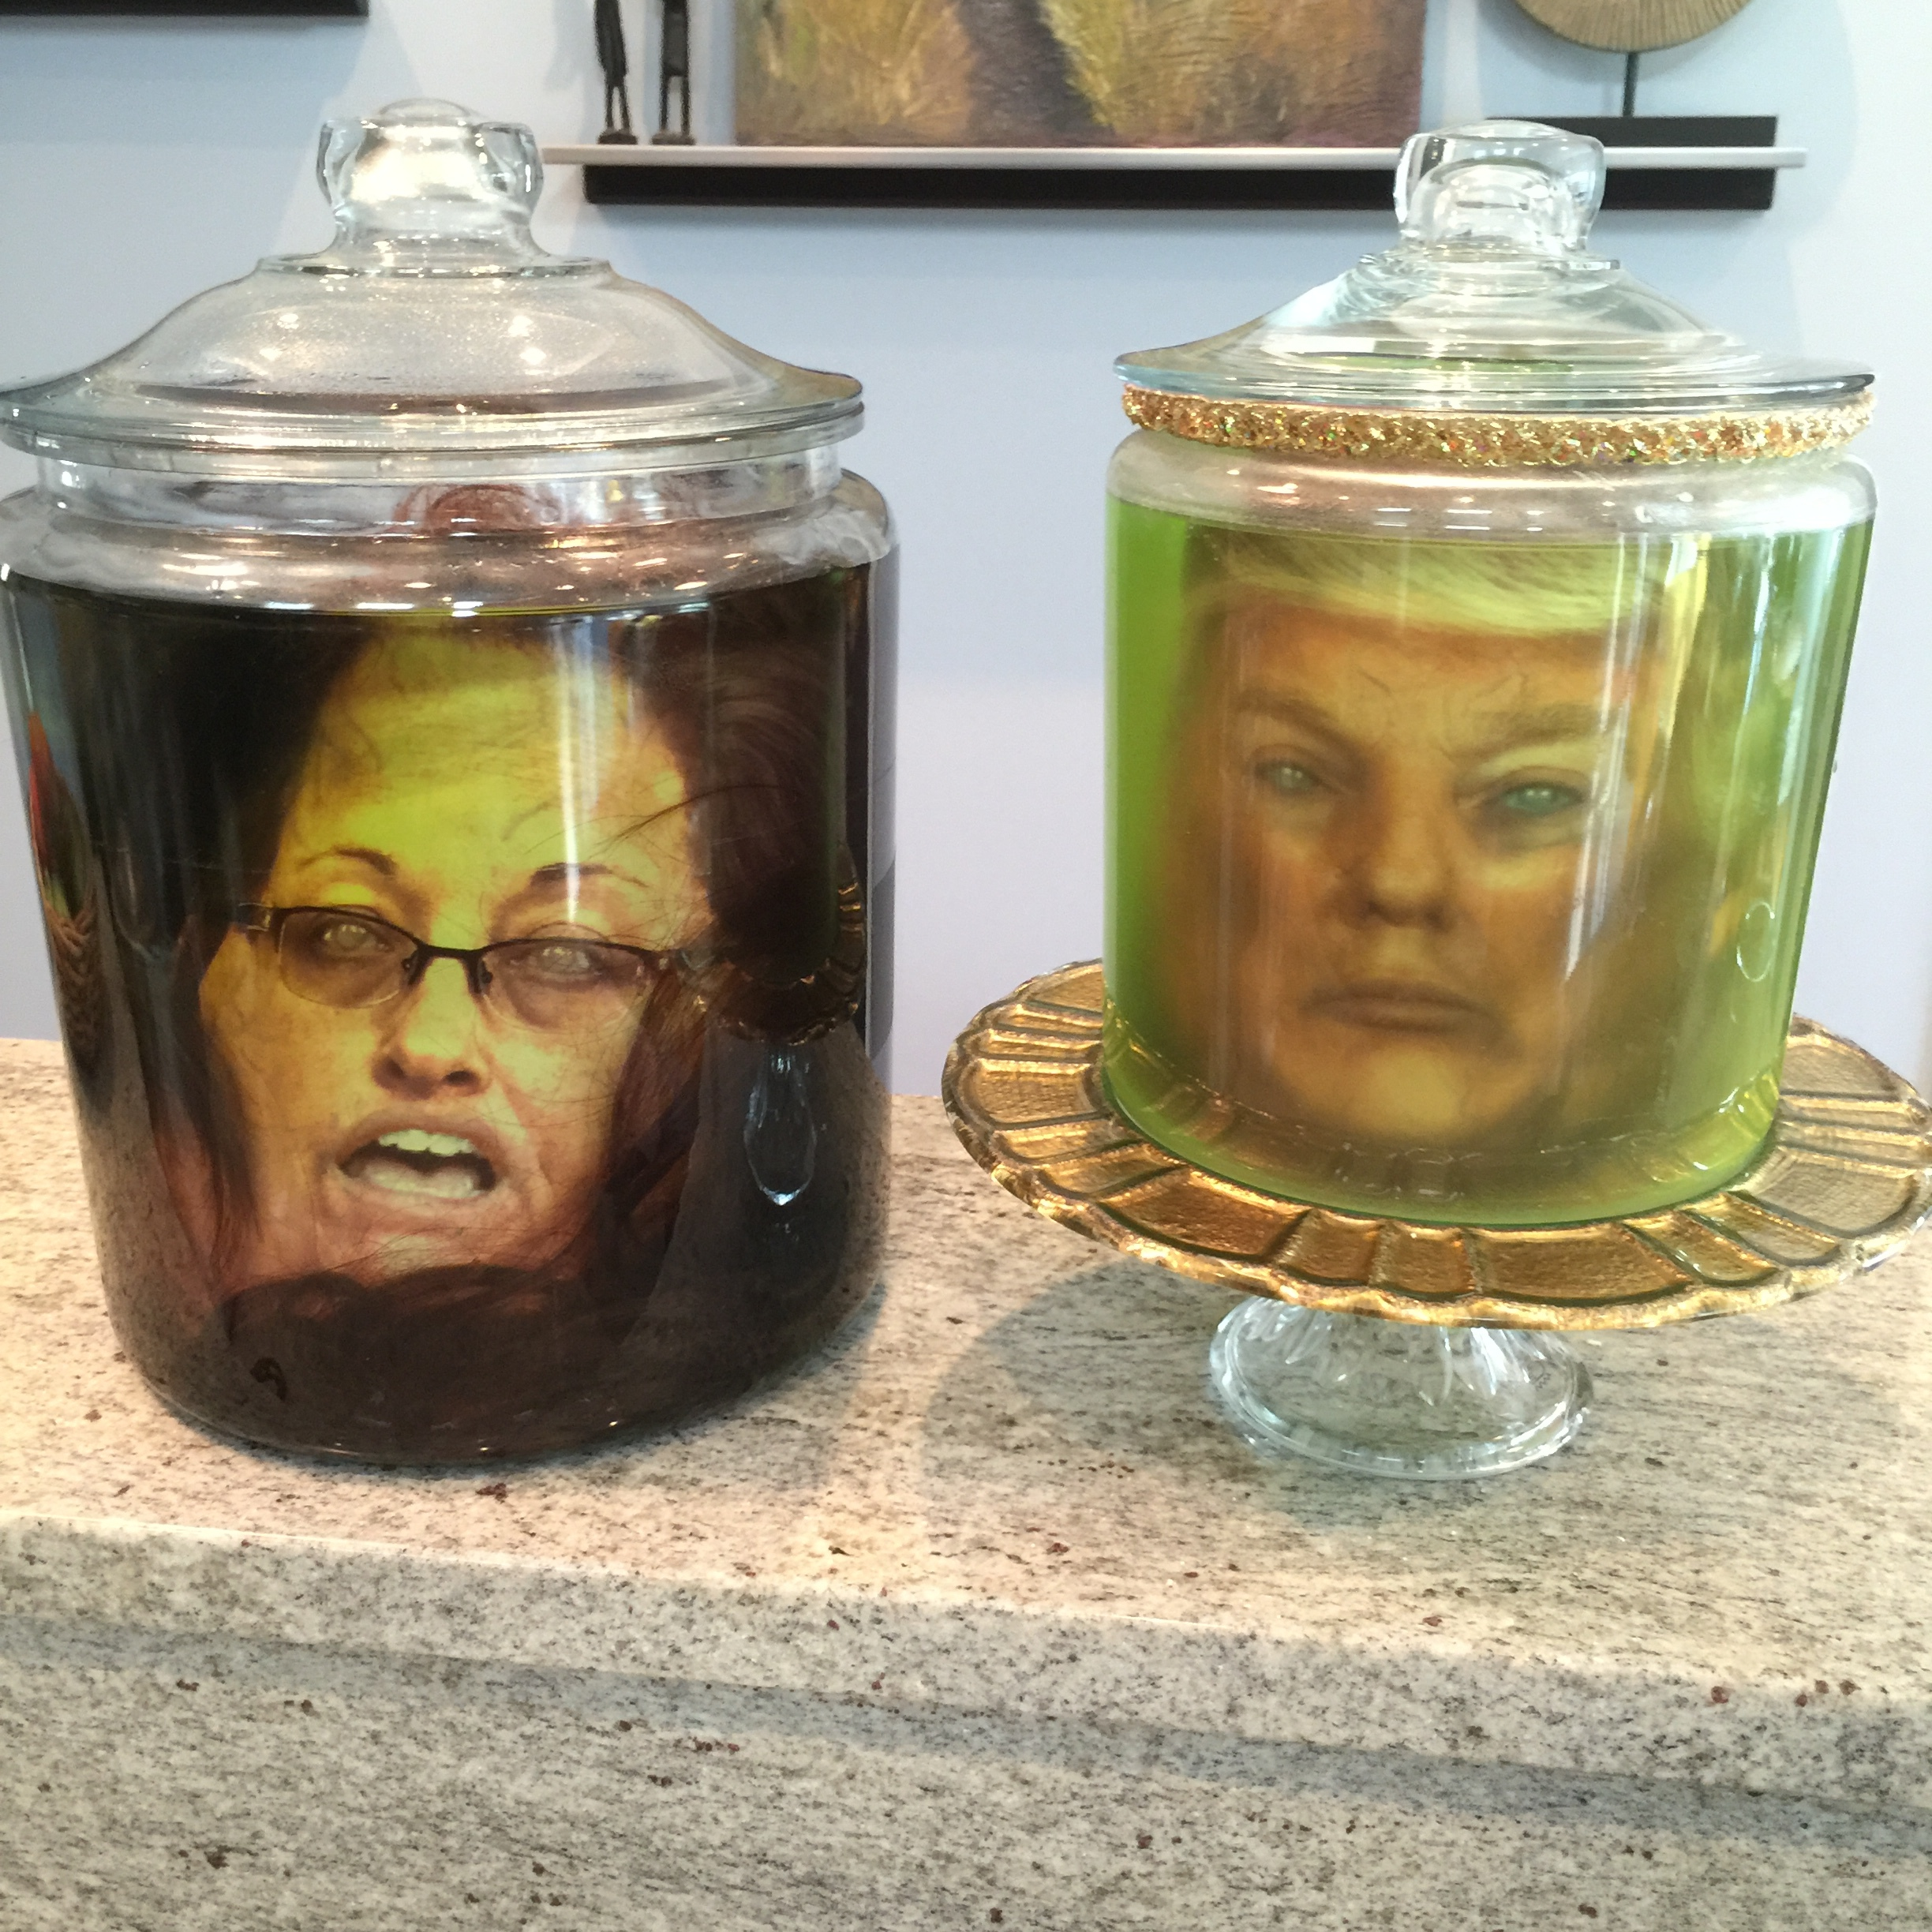 I added a little flour to Trumps jar to make it appear cloudy.